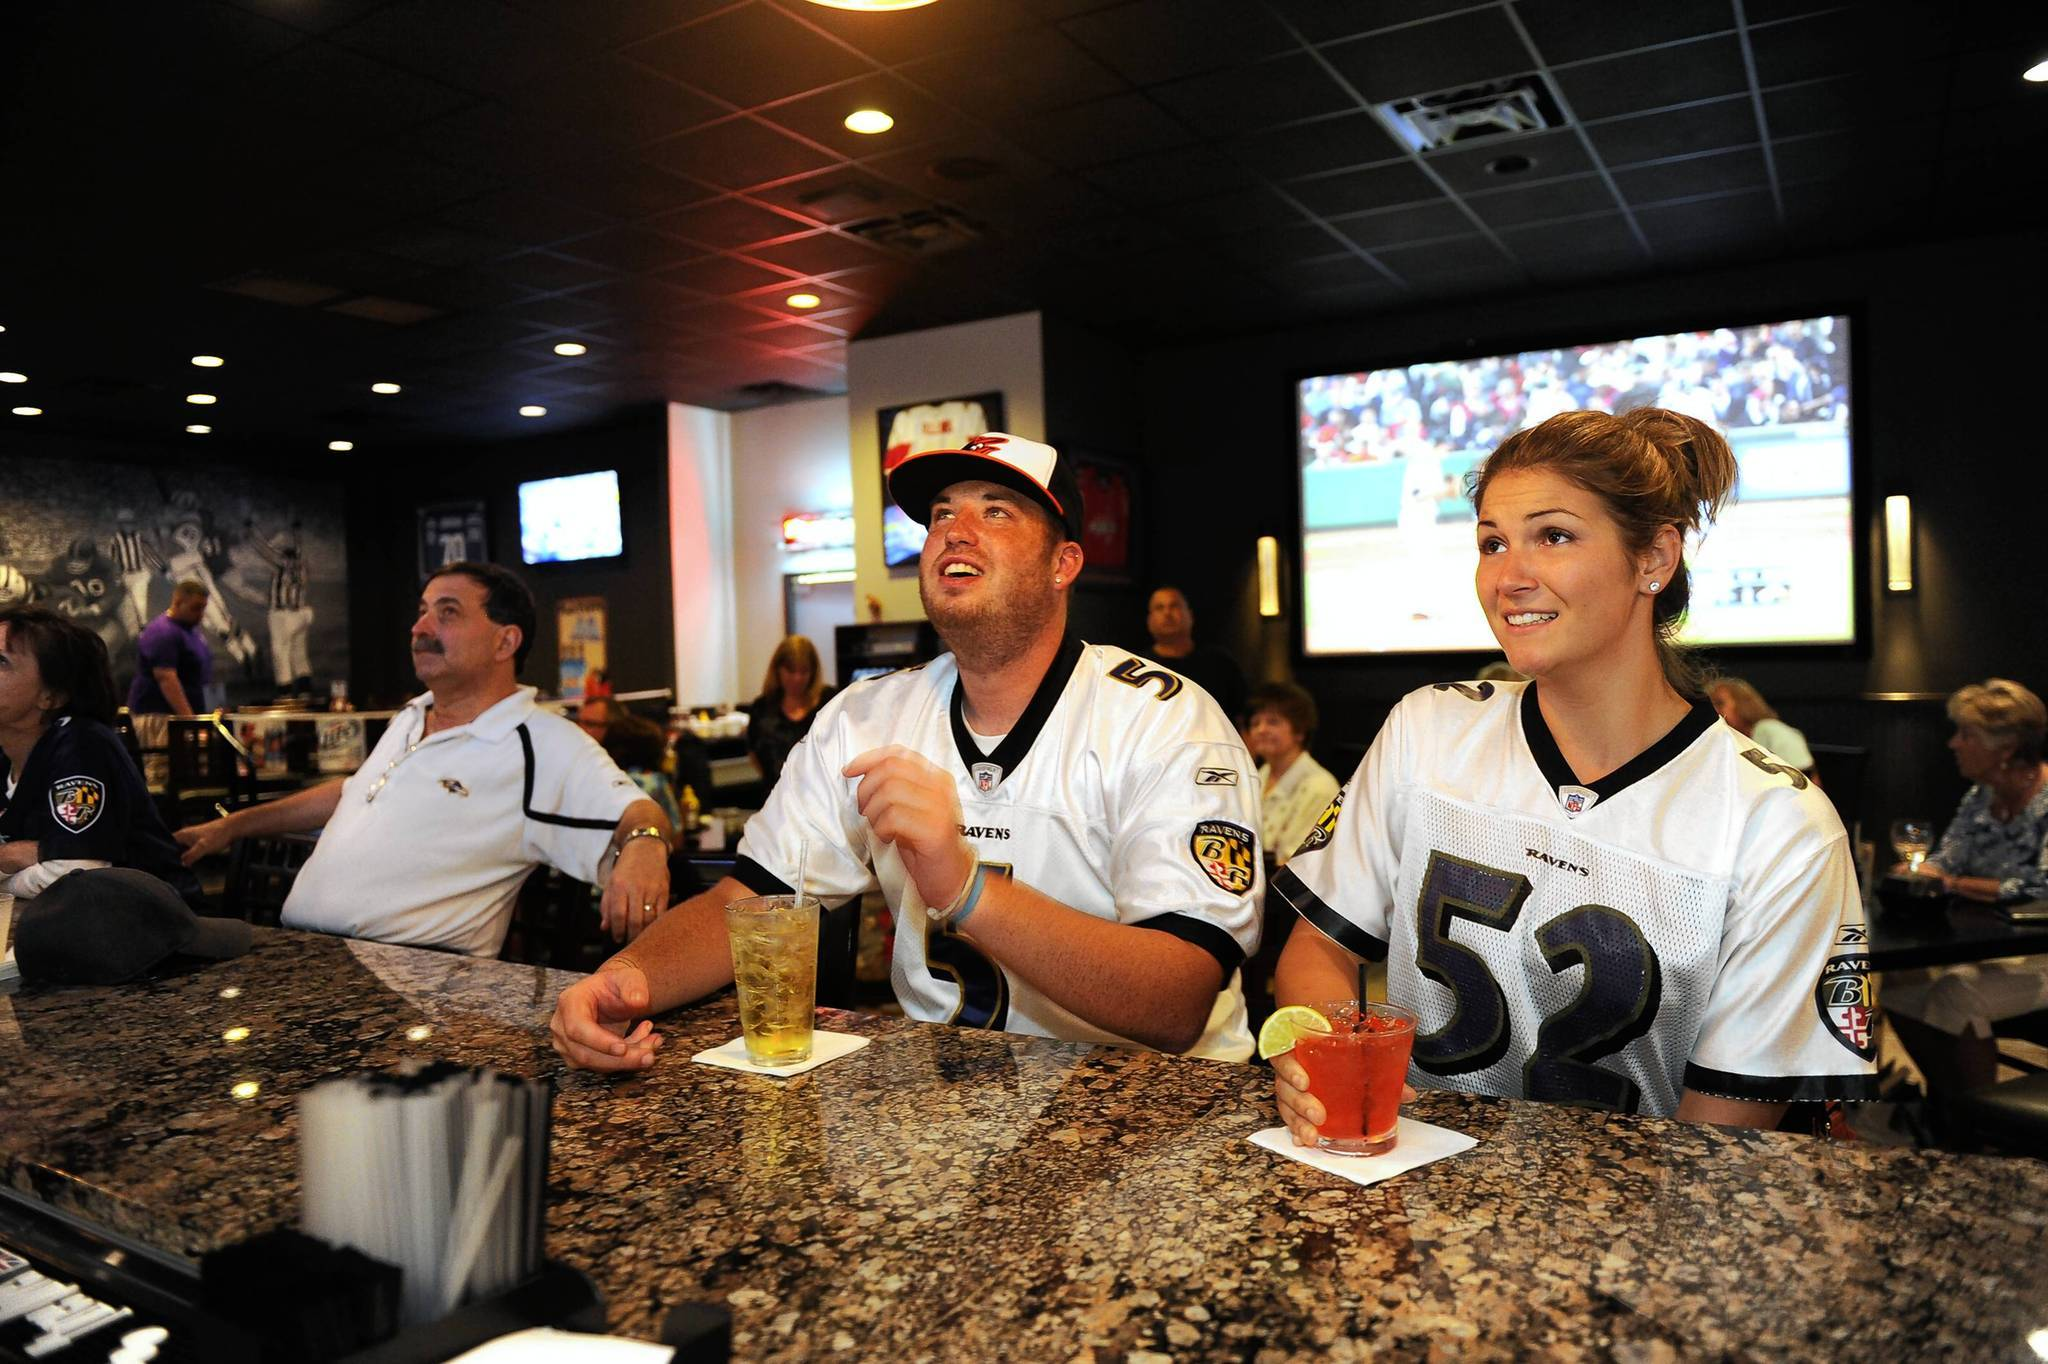 Kyle Kramer and Briana Spangler react to the Orioles game at Playoff Bar and Grill.